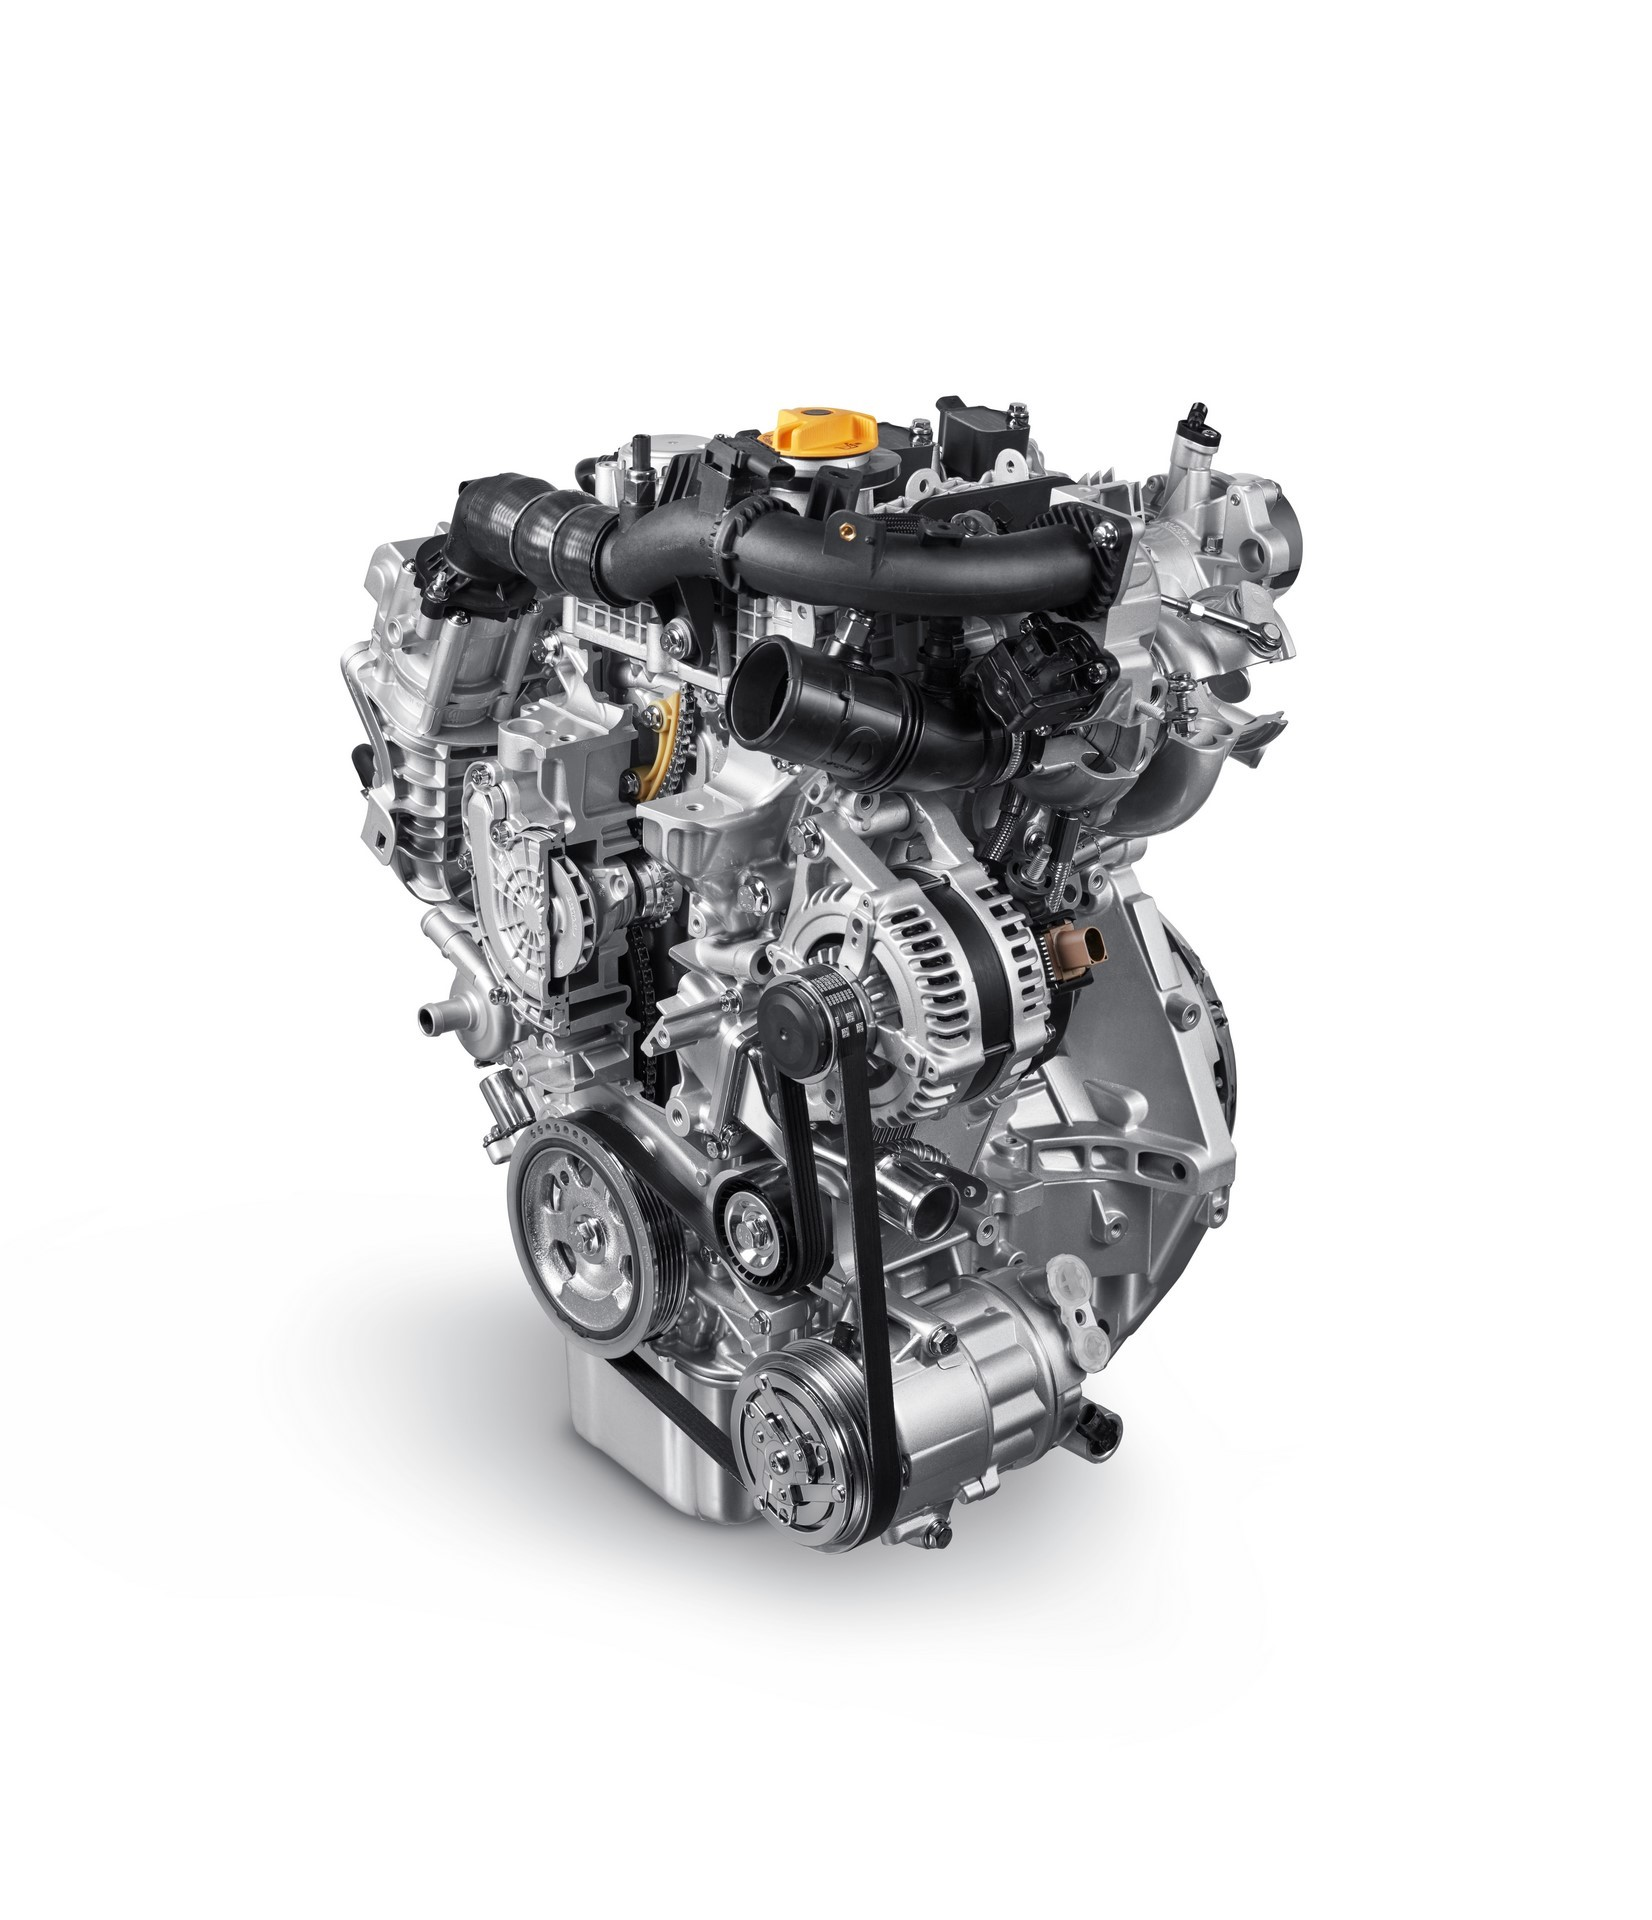 180828_Fiat_New-10L-Turbo-3-cylinder-120HP_11